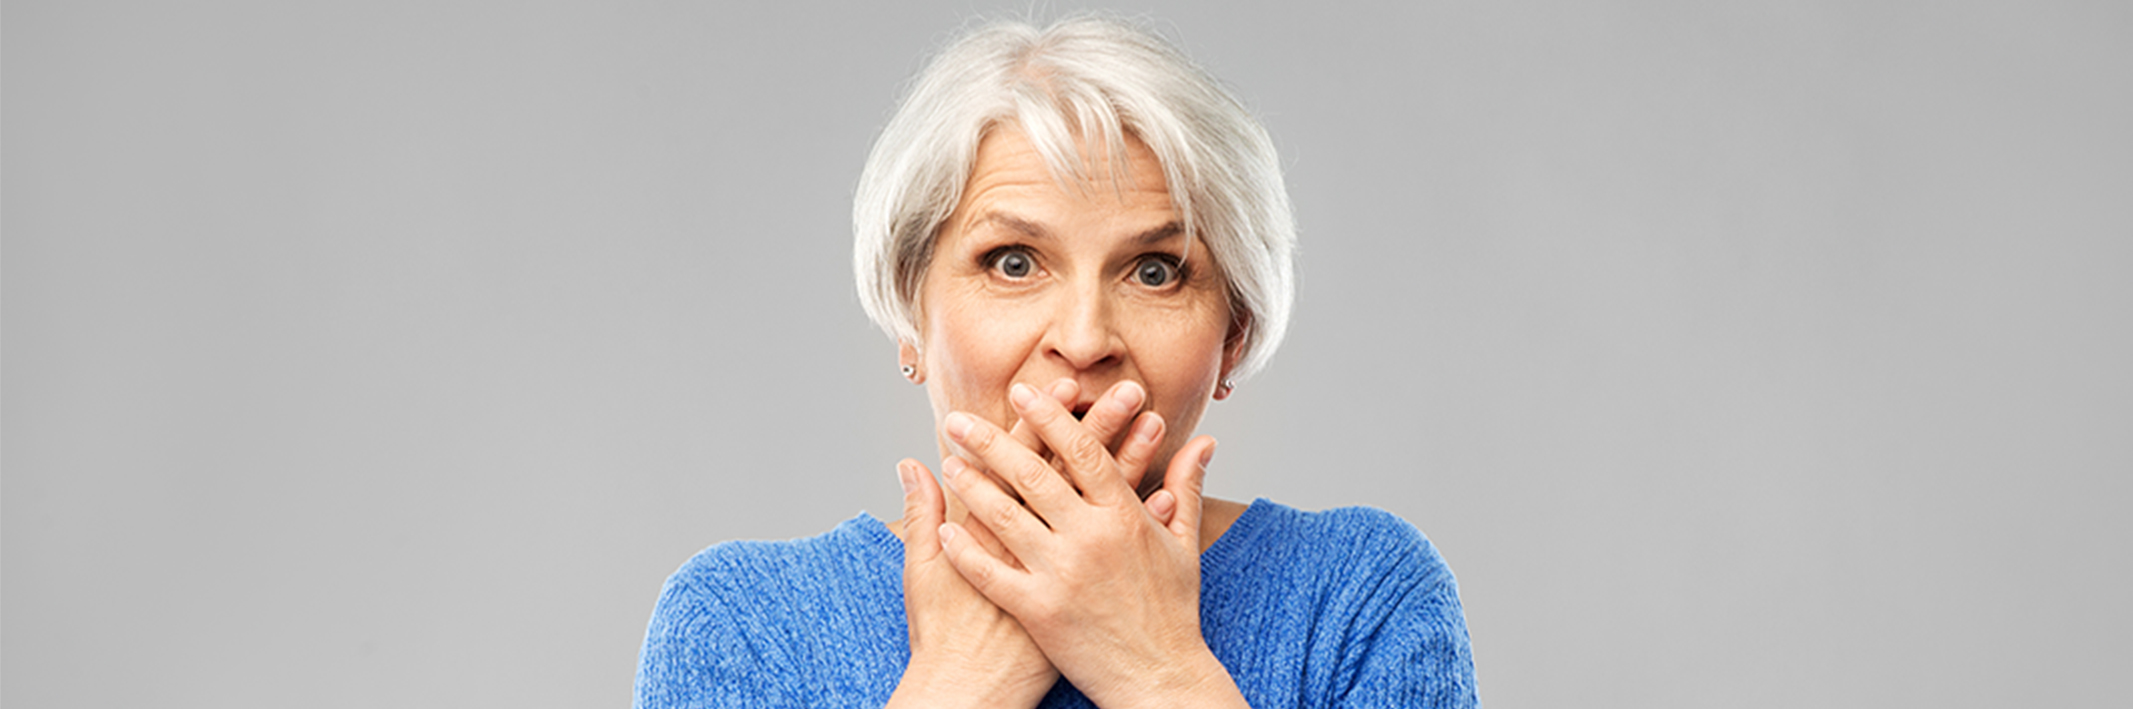 Ageing and Tooth Loss: What You Should Know